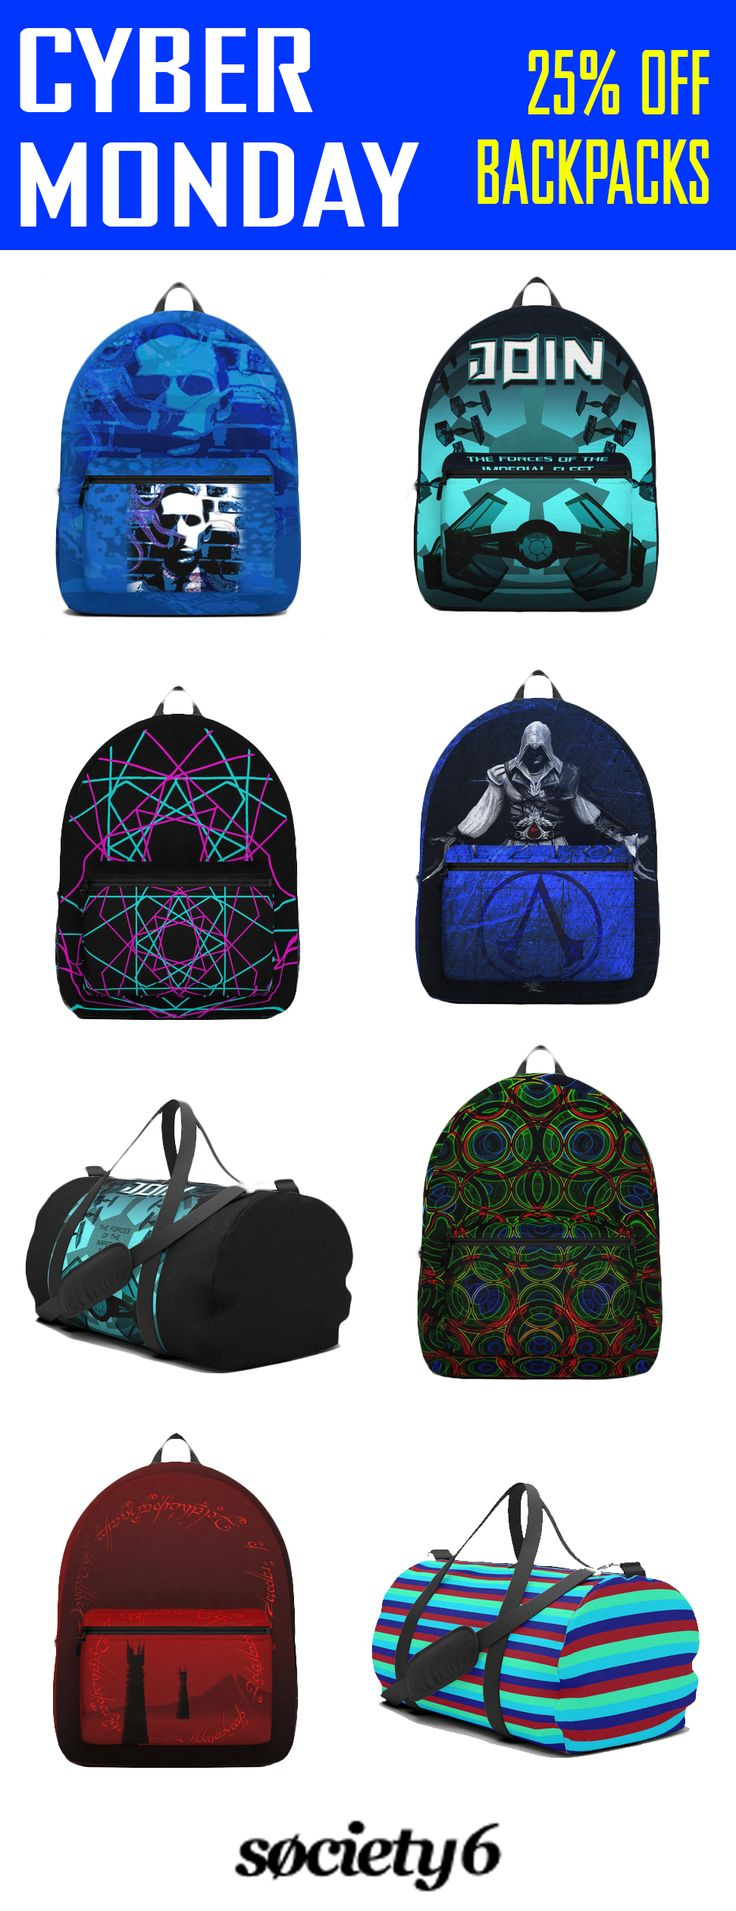 Cyber Monday2017.   25% OFF backpacks & duffle bags +  Free Shipping!  #cybermonday #sales #save #discount #backpack #dufflebag #cinema #dark #lovecraft #gaming #gamer #highschool #campus #travelbackpack #travelbag #travel #gamerbackpack #gym #society6 #gifts #giftsforhim #giftsforher #home #family #style #39 #shopping #onlineshopping #xmas #christmas #xmasgifts #freeshipping #movie #moviegifts